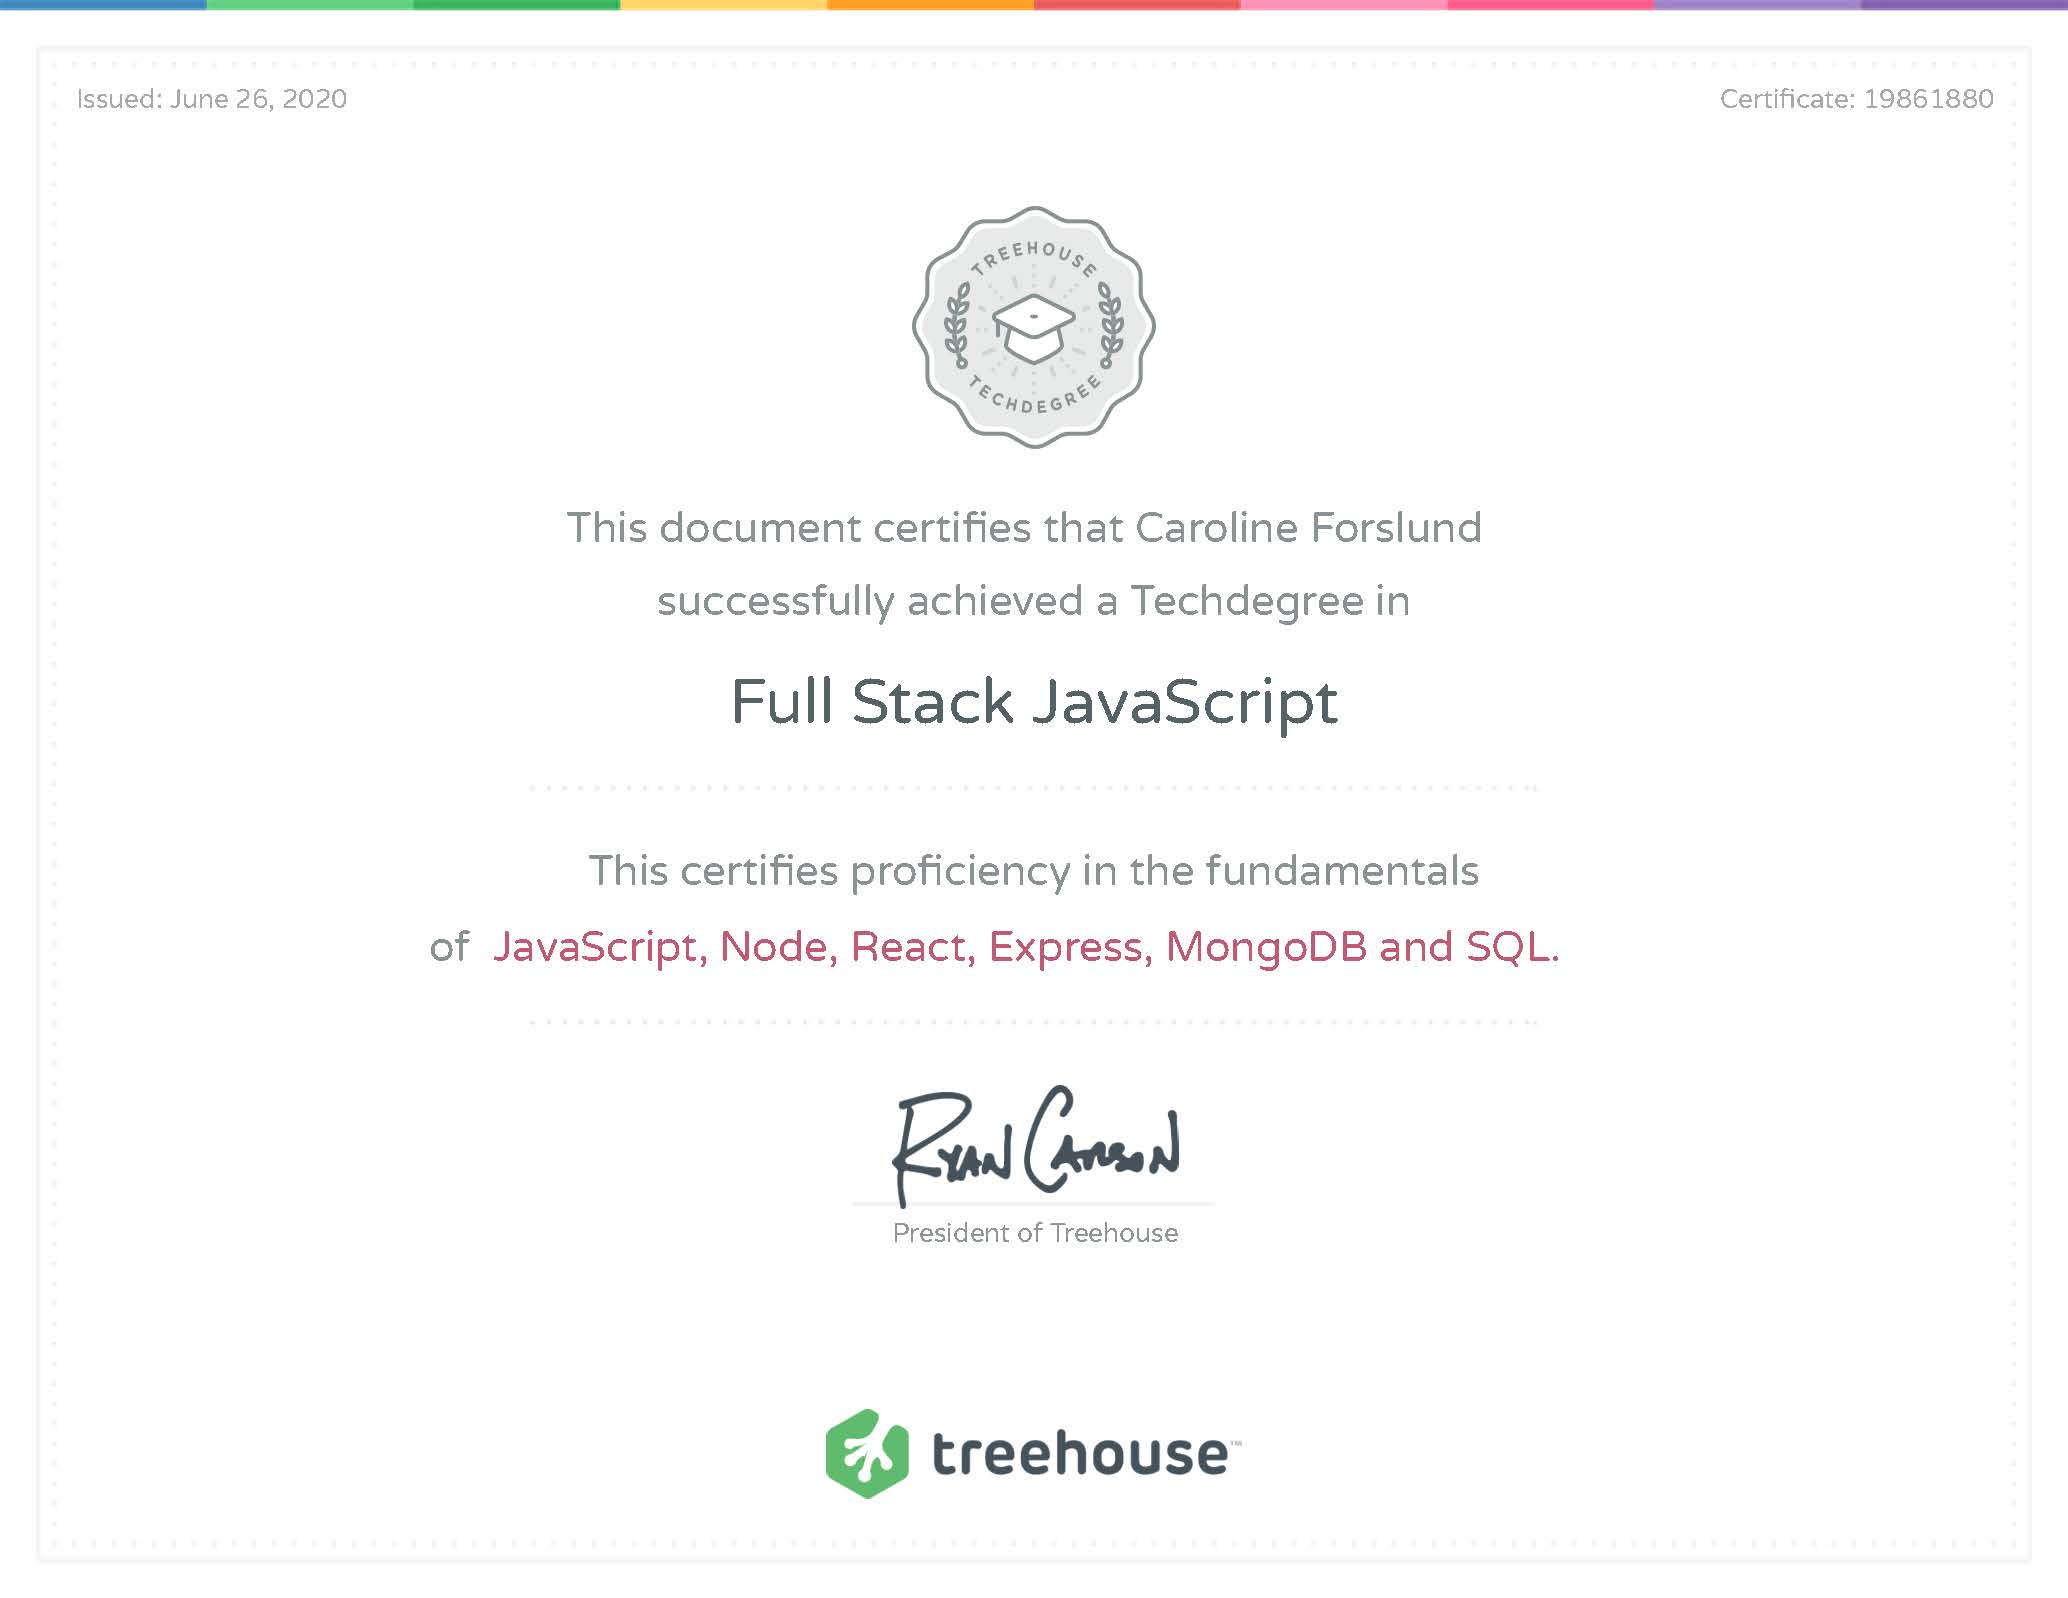 Full Stack JavaScript Certificate from Team Treehouse